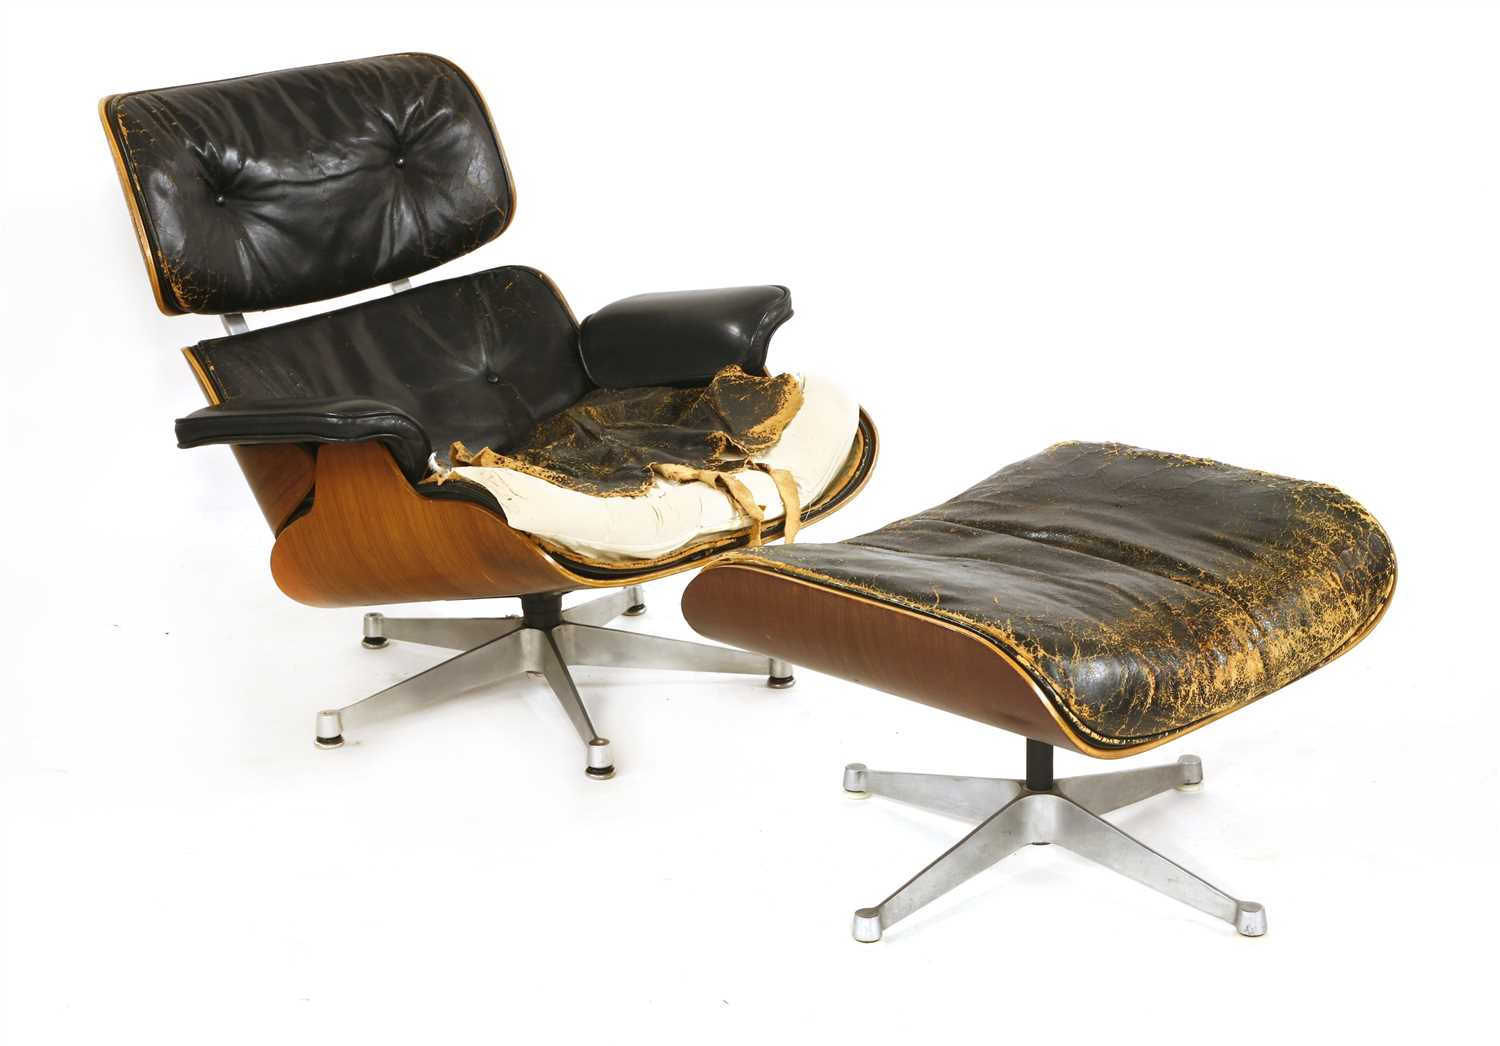 Charles Eames Lounge Chair Lot 423 - A 670 And 671 Lounge Chair And Ottoman,